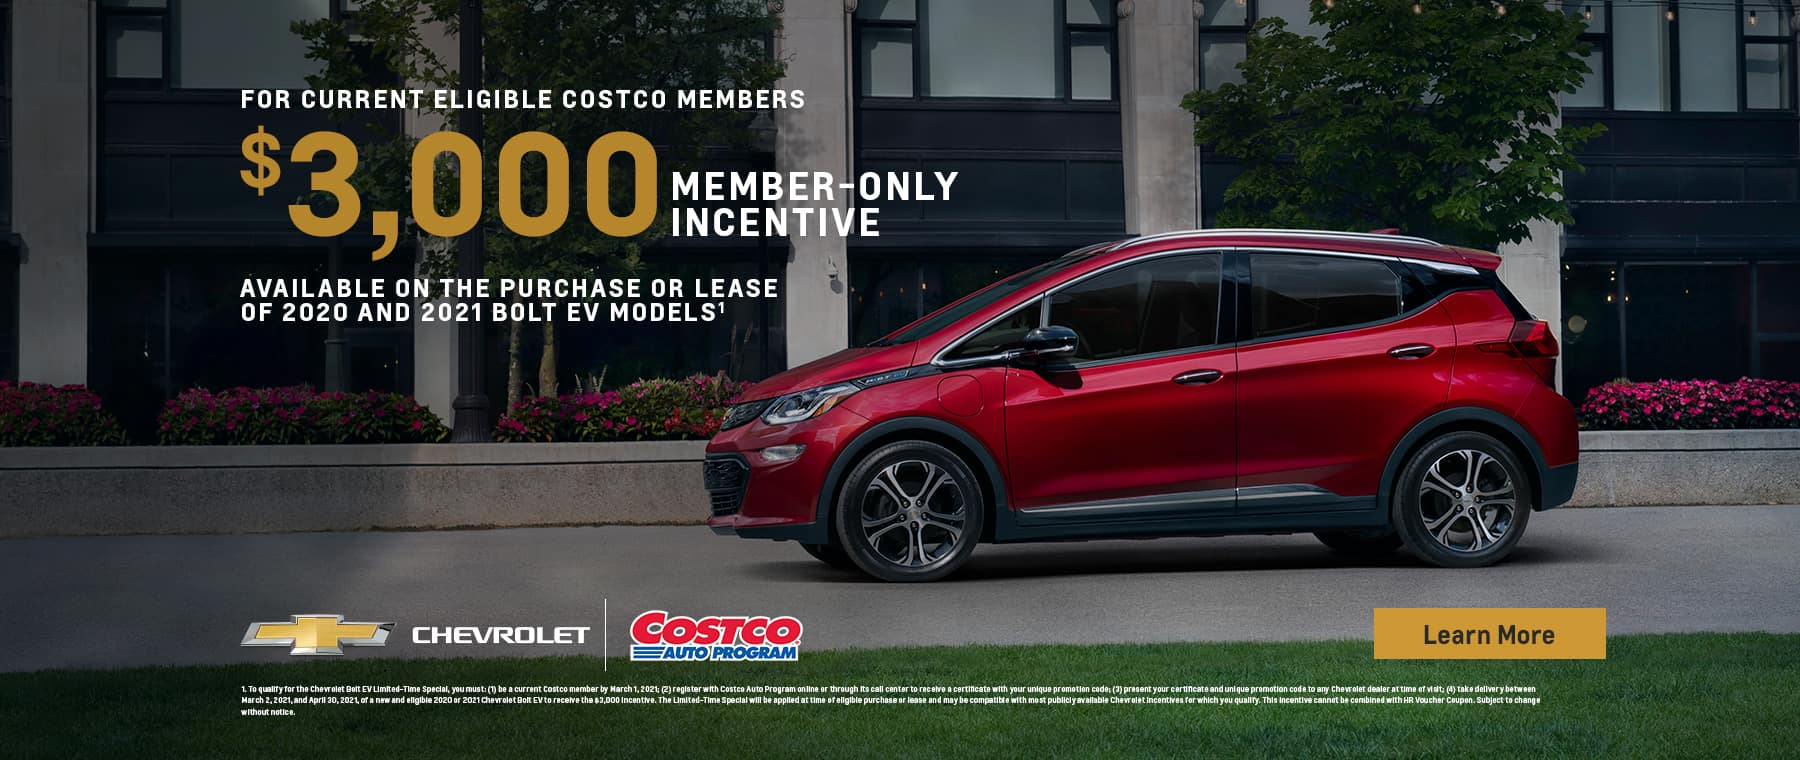 2020 and 2021 Bolt with $3,000 Costco Member-only Incentive